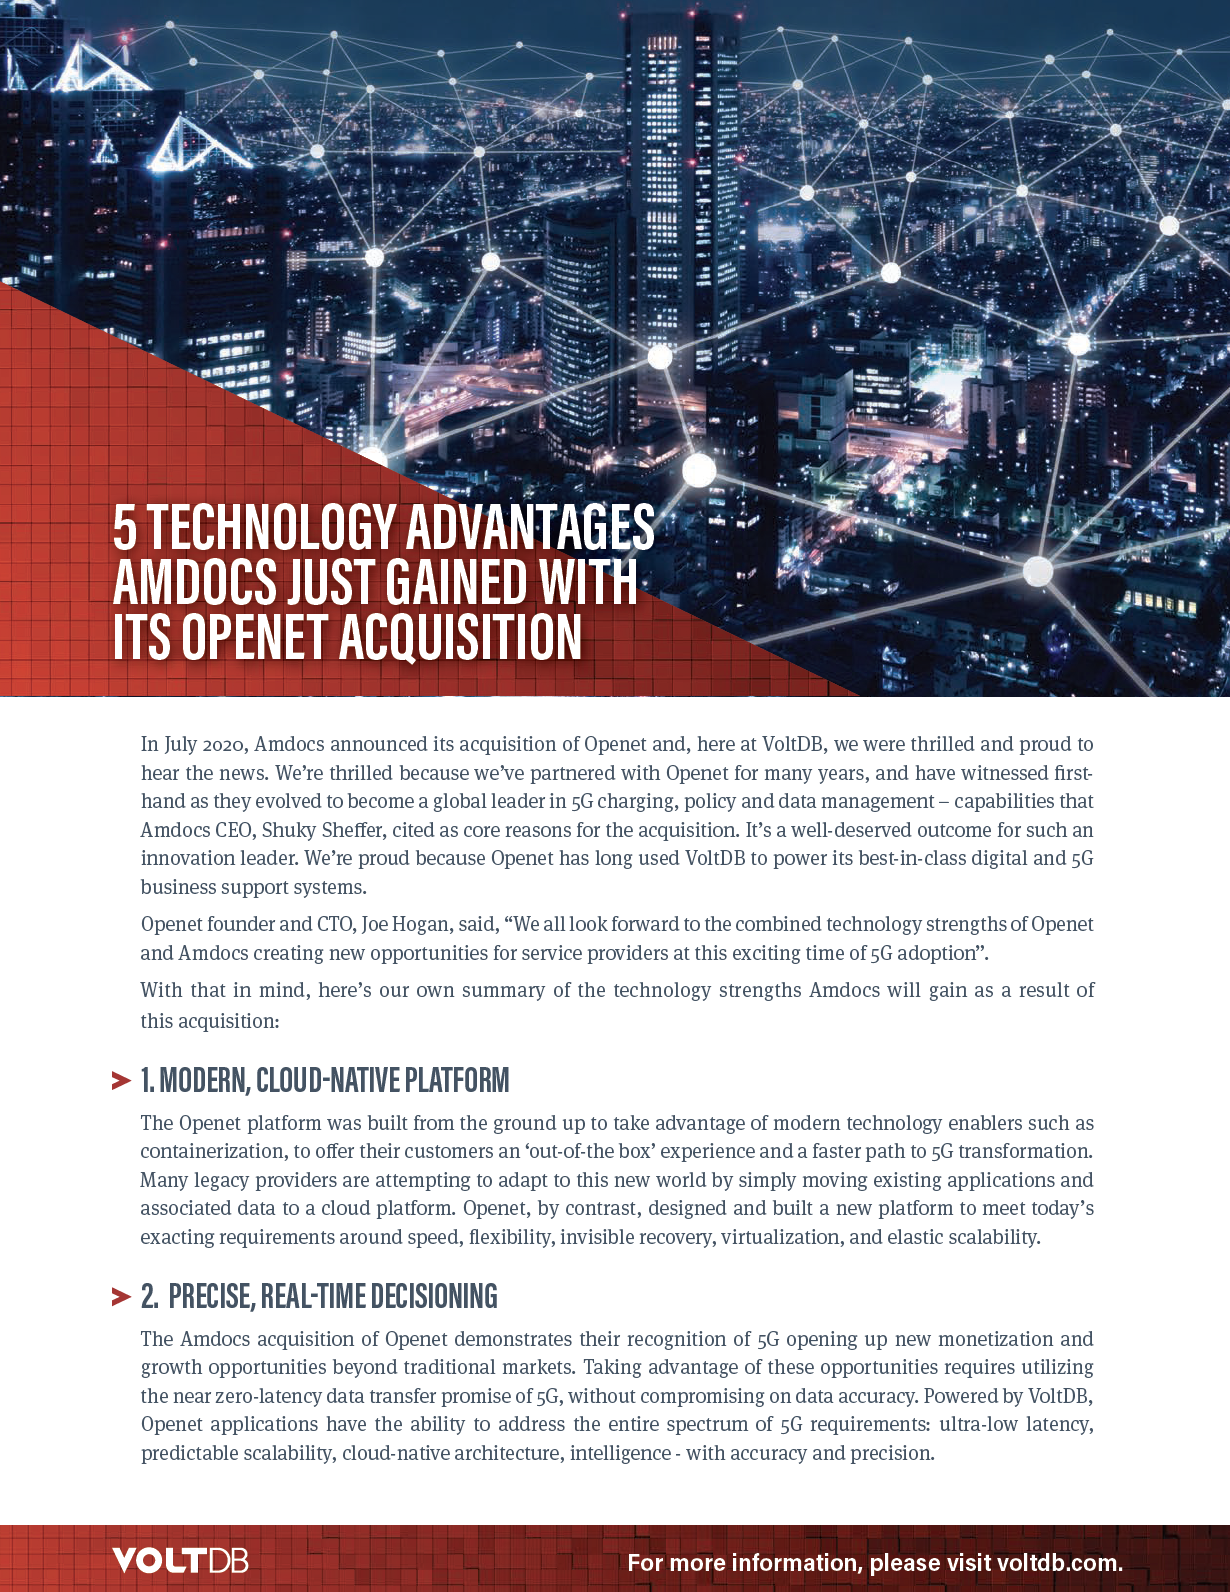 Amdocs Acquires Openet